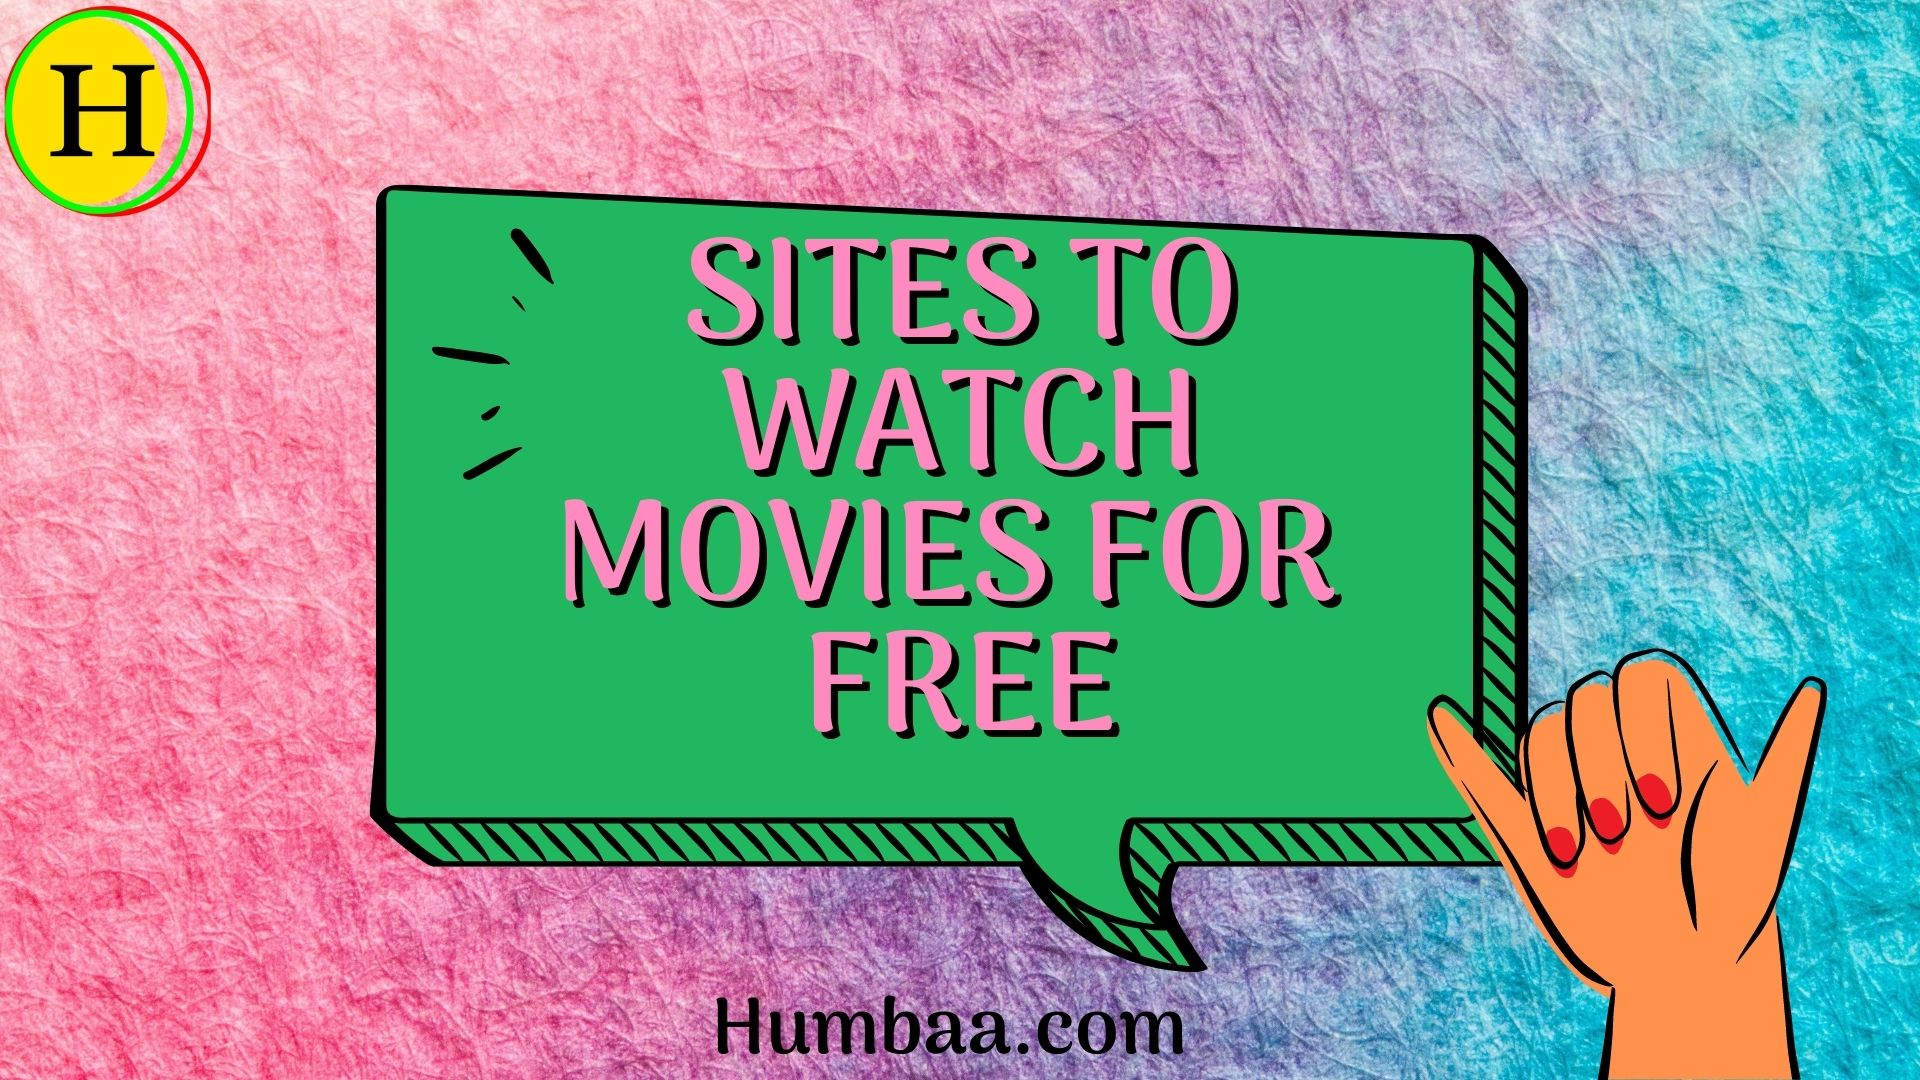 sites to watch movies for free